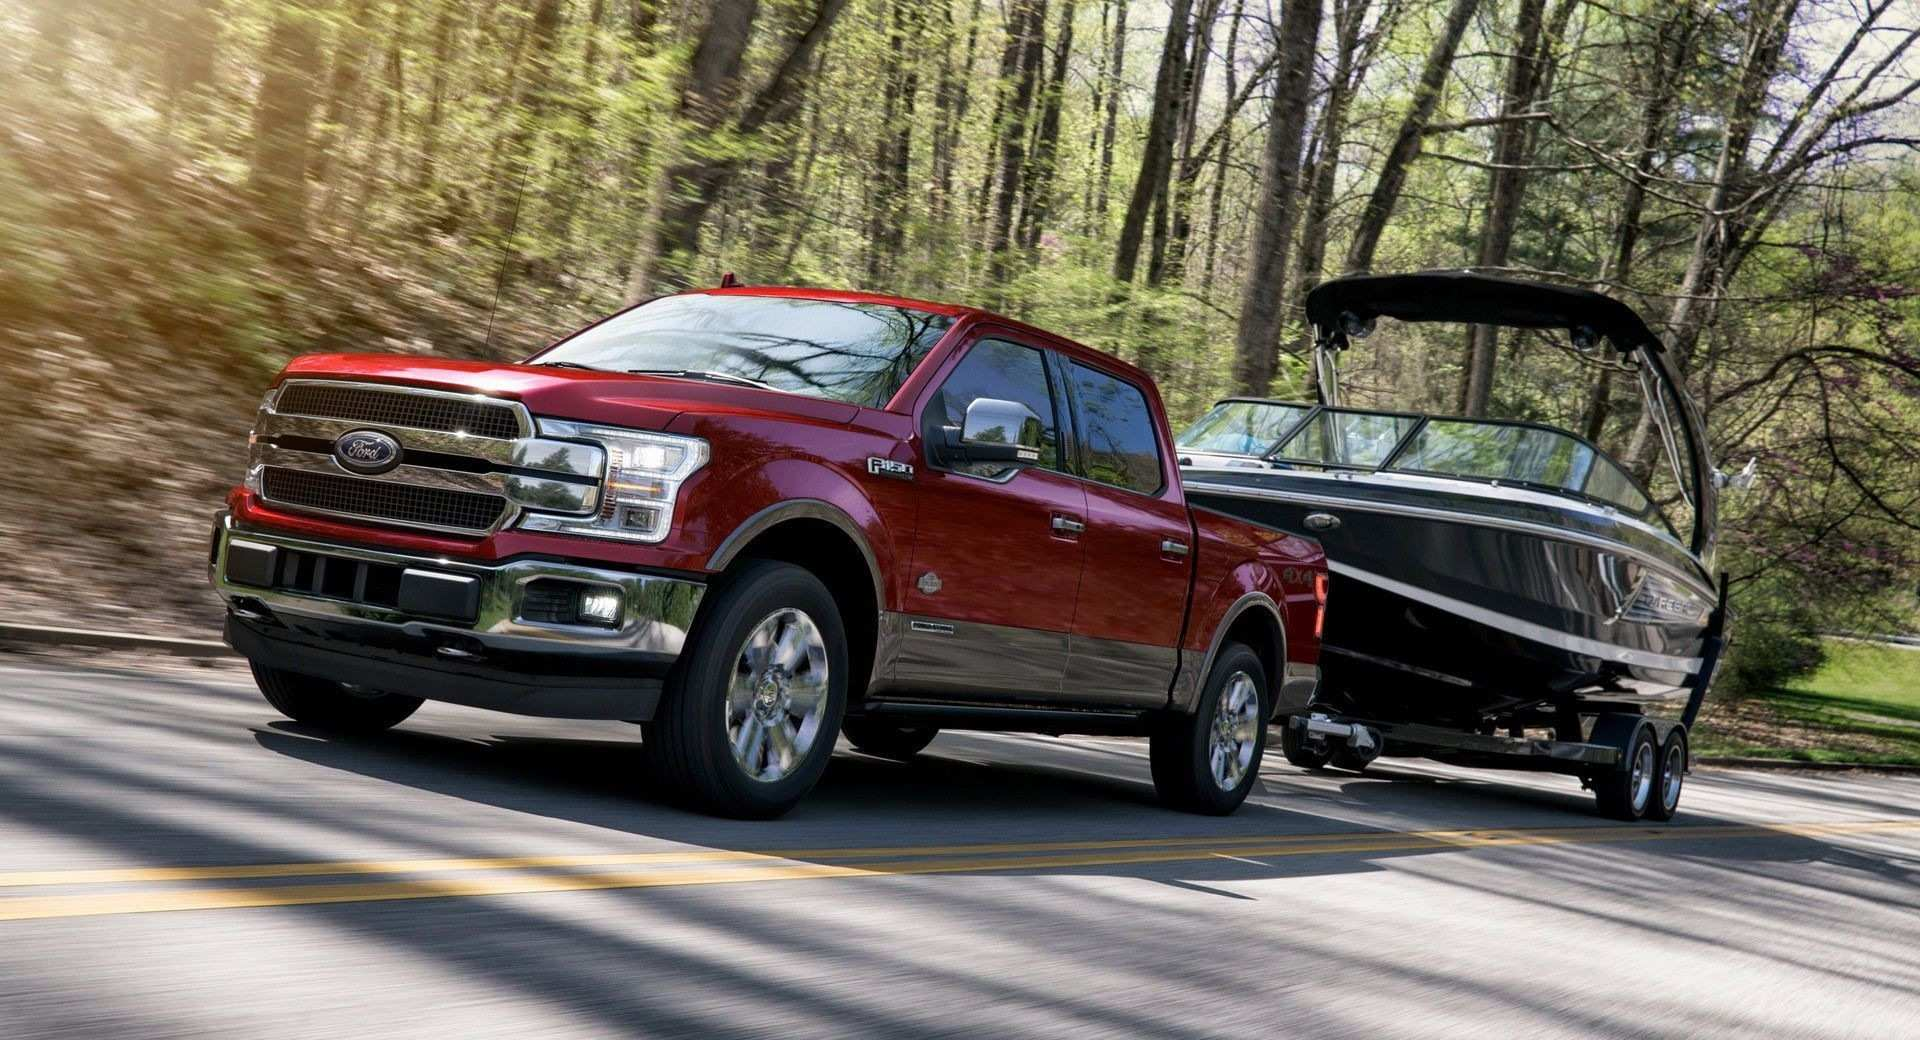 92 The Best 2020 All Ford F150 Raptor Performance And New Engine